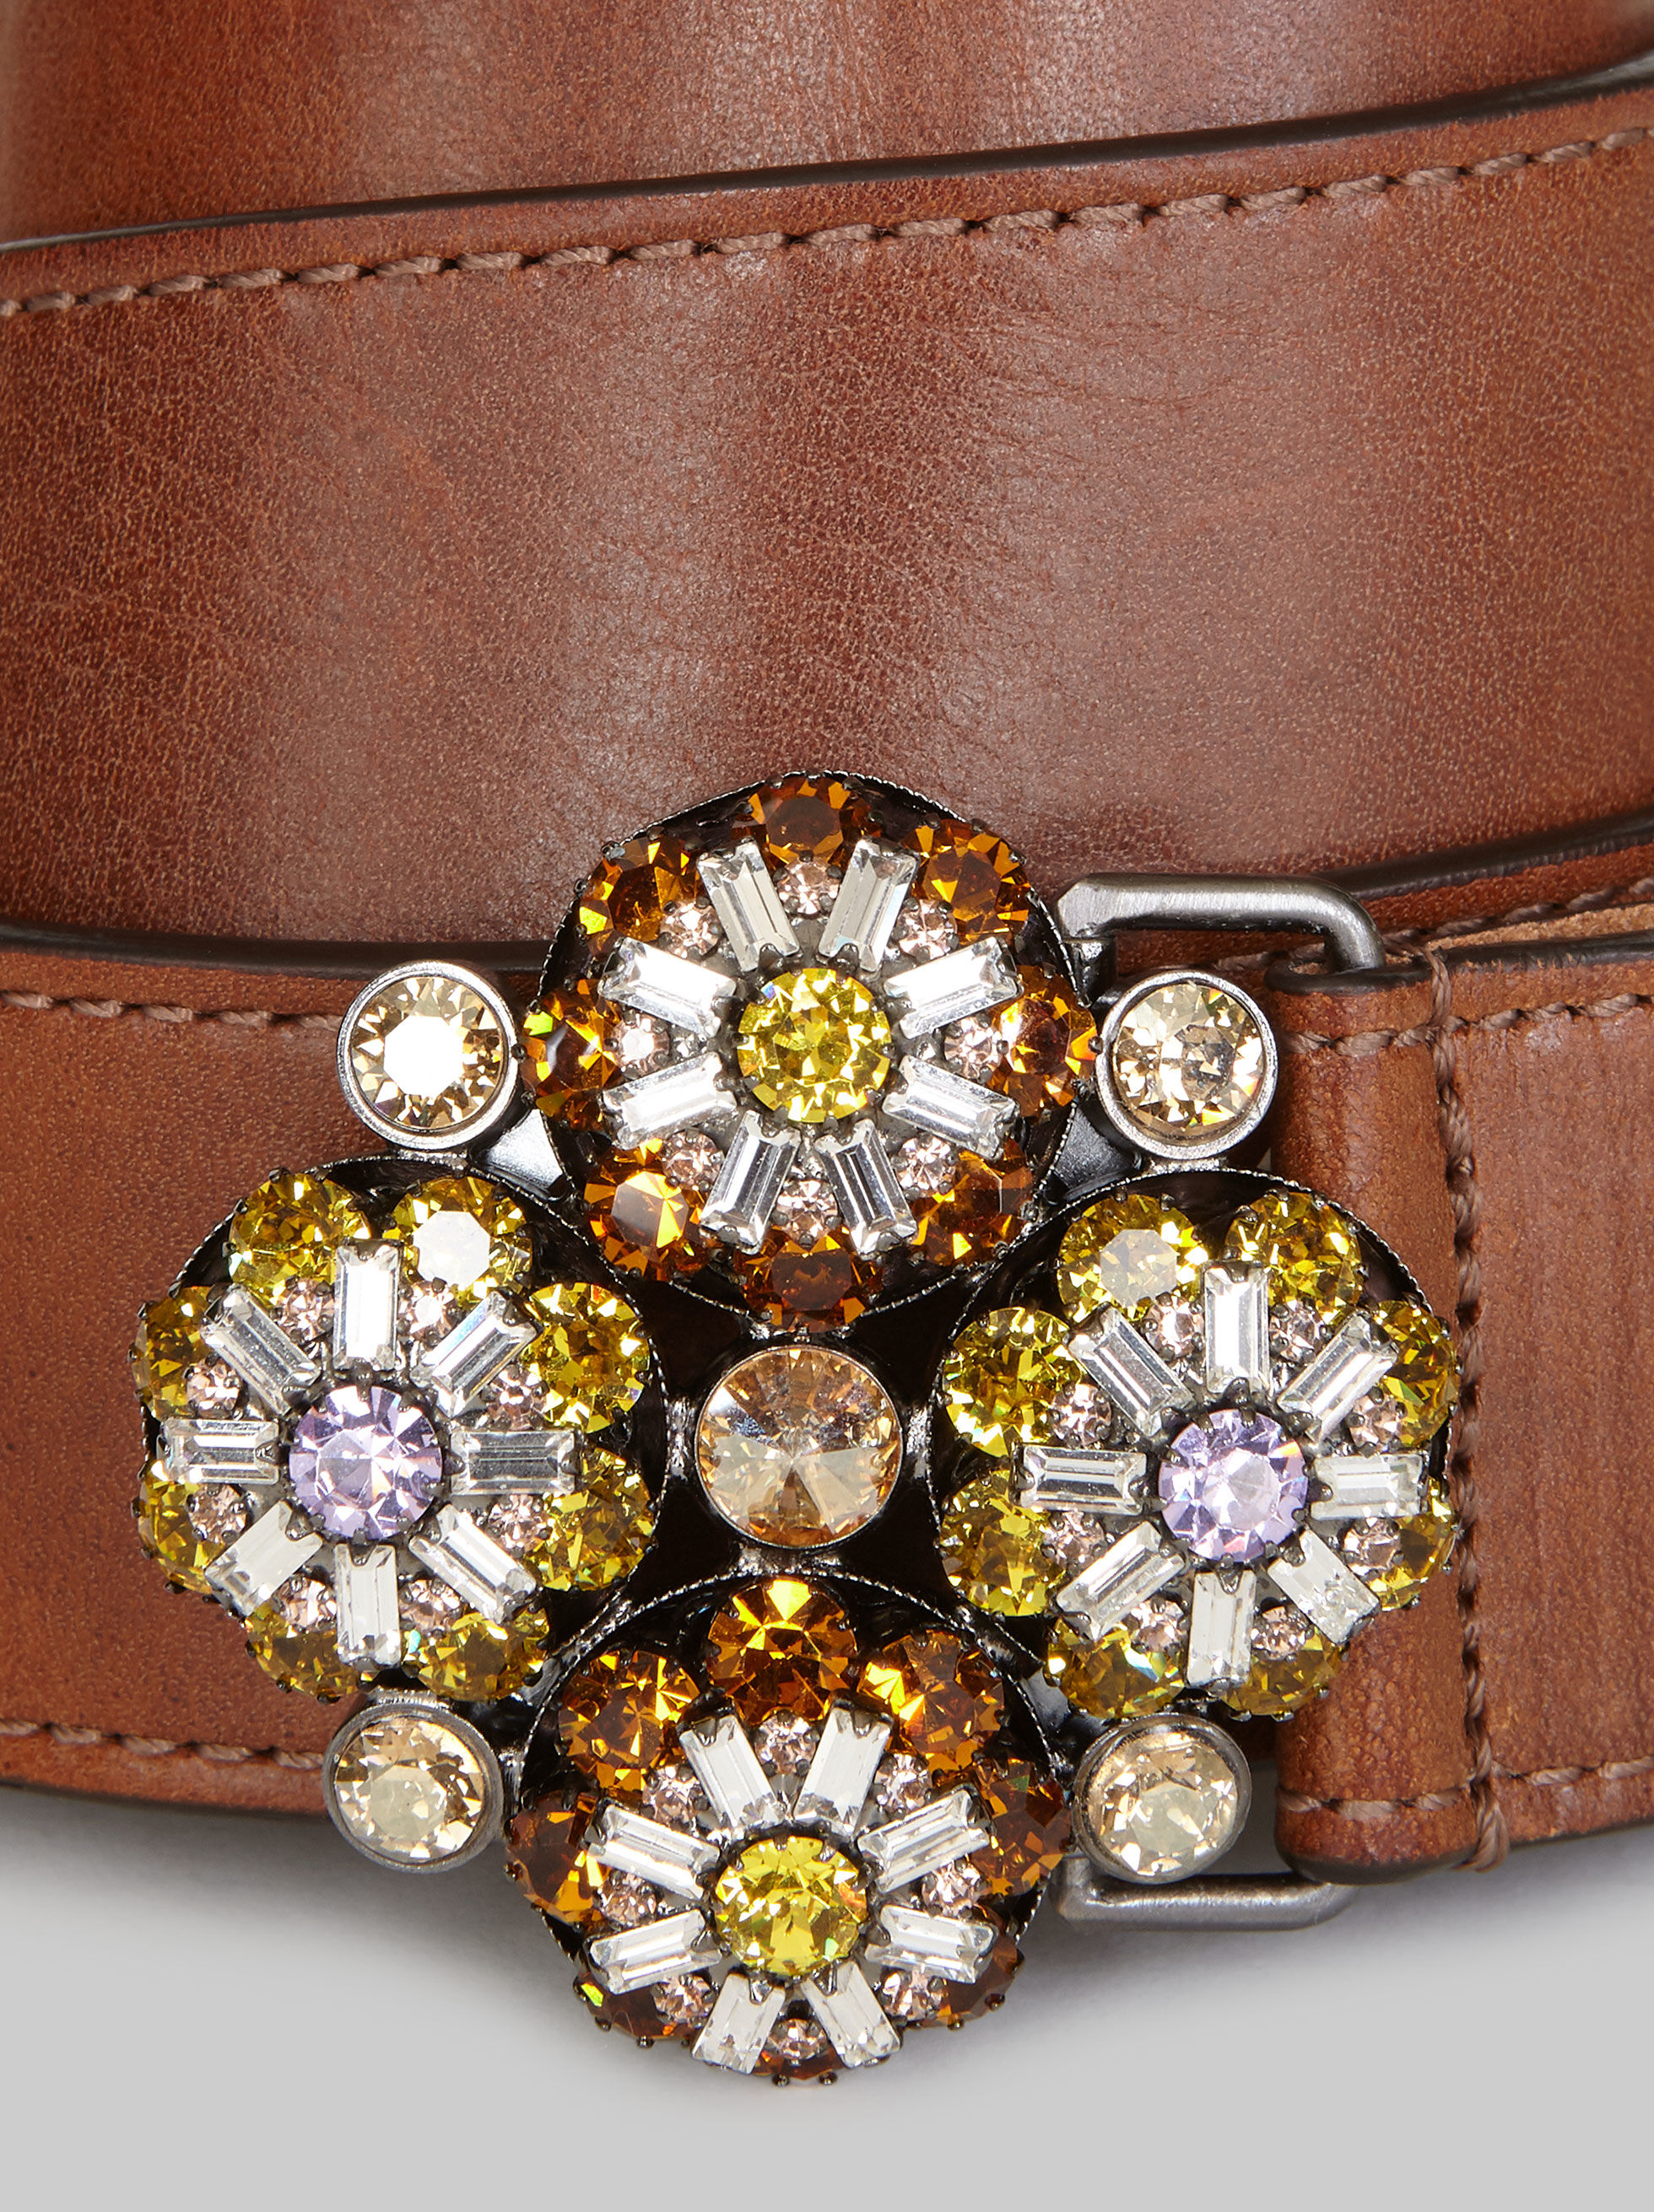 LEATHER BELT WITH JEWELLED BUCKLE